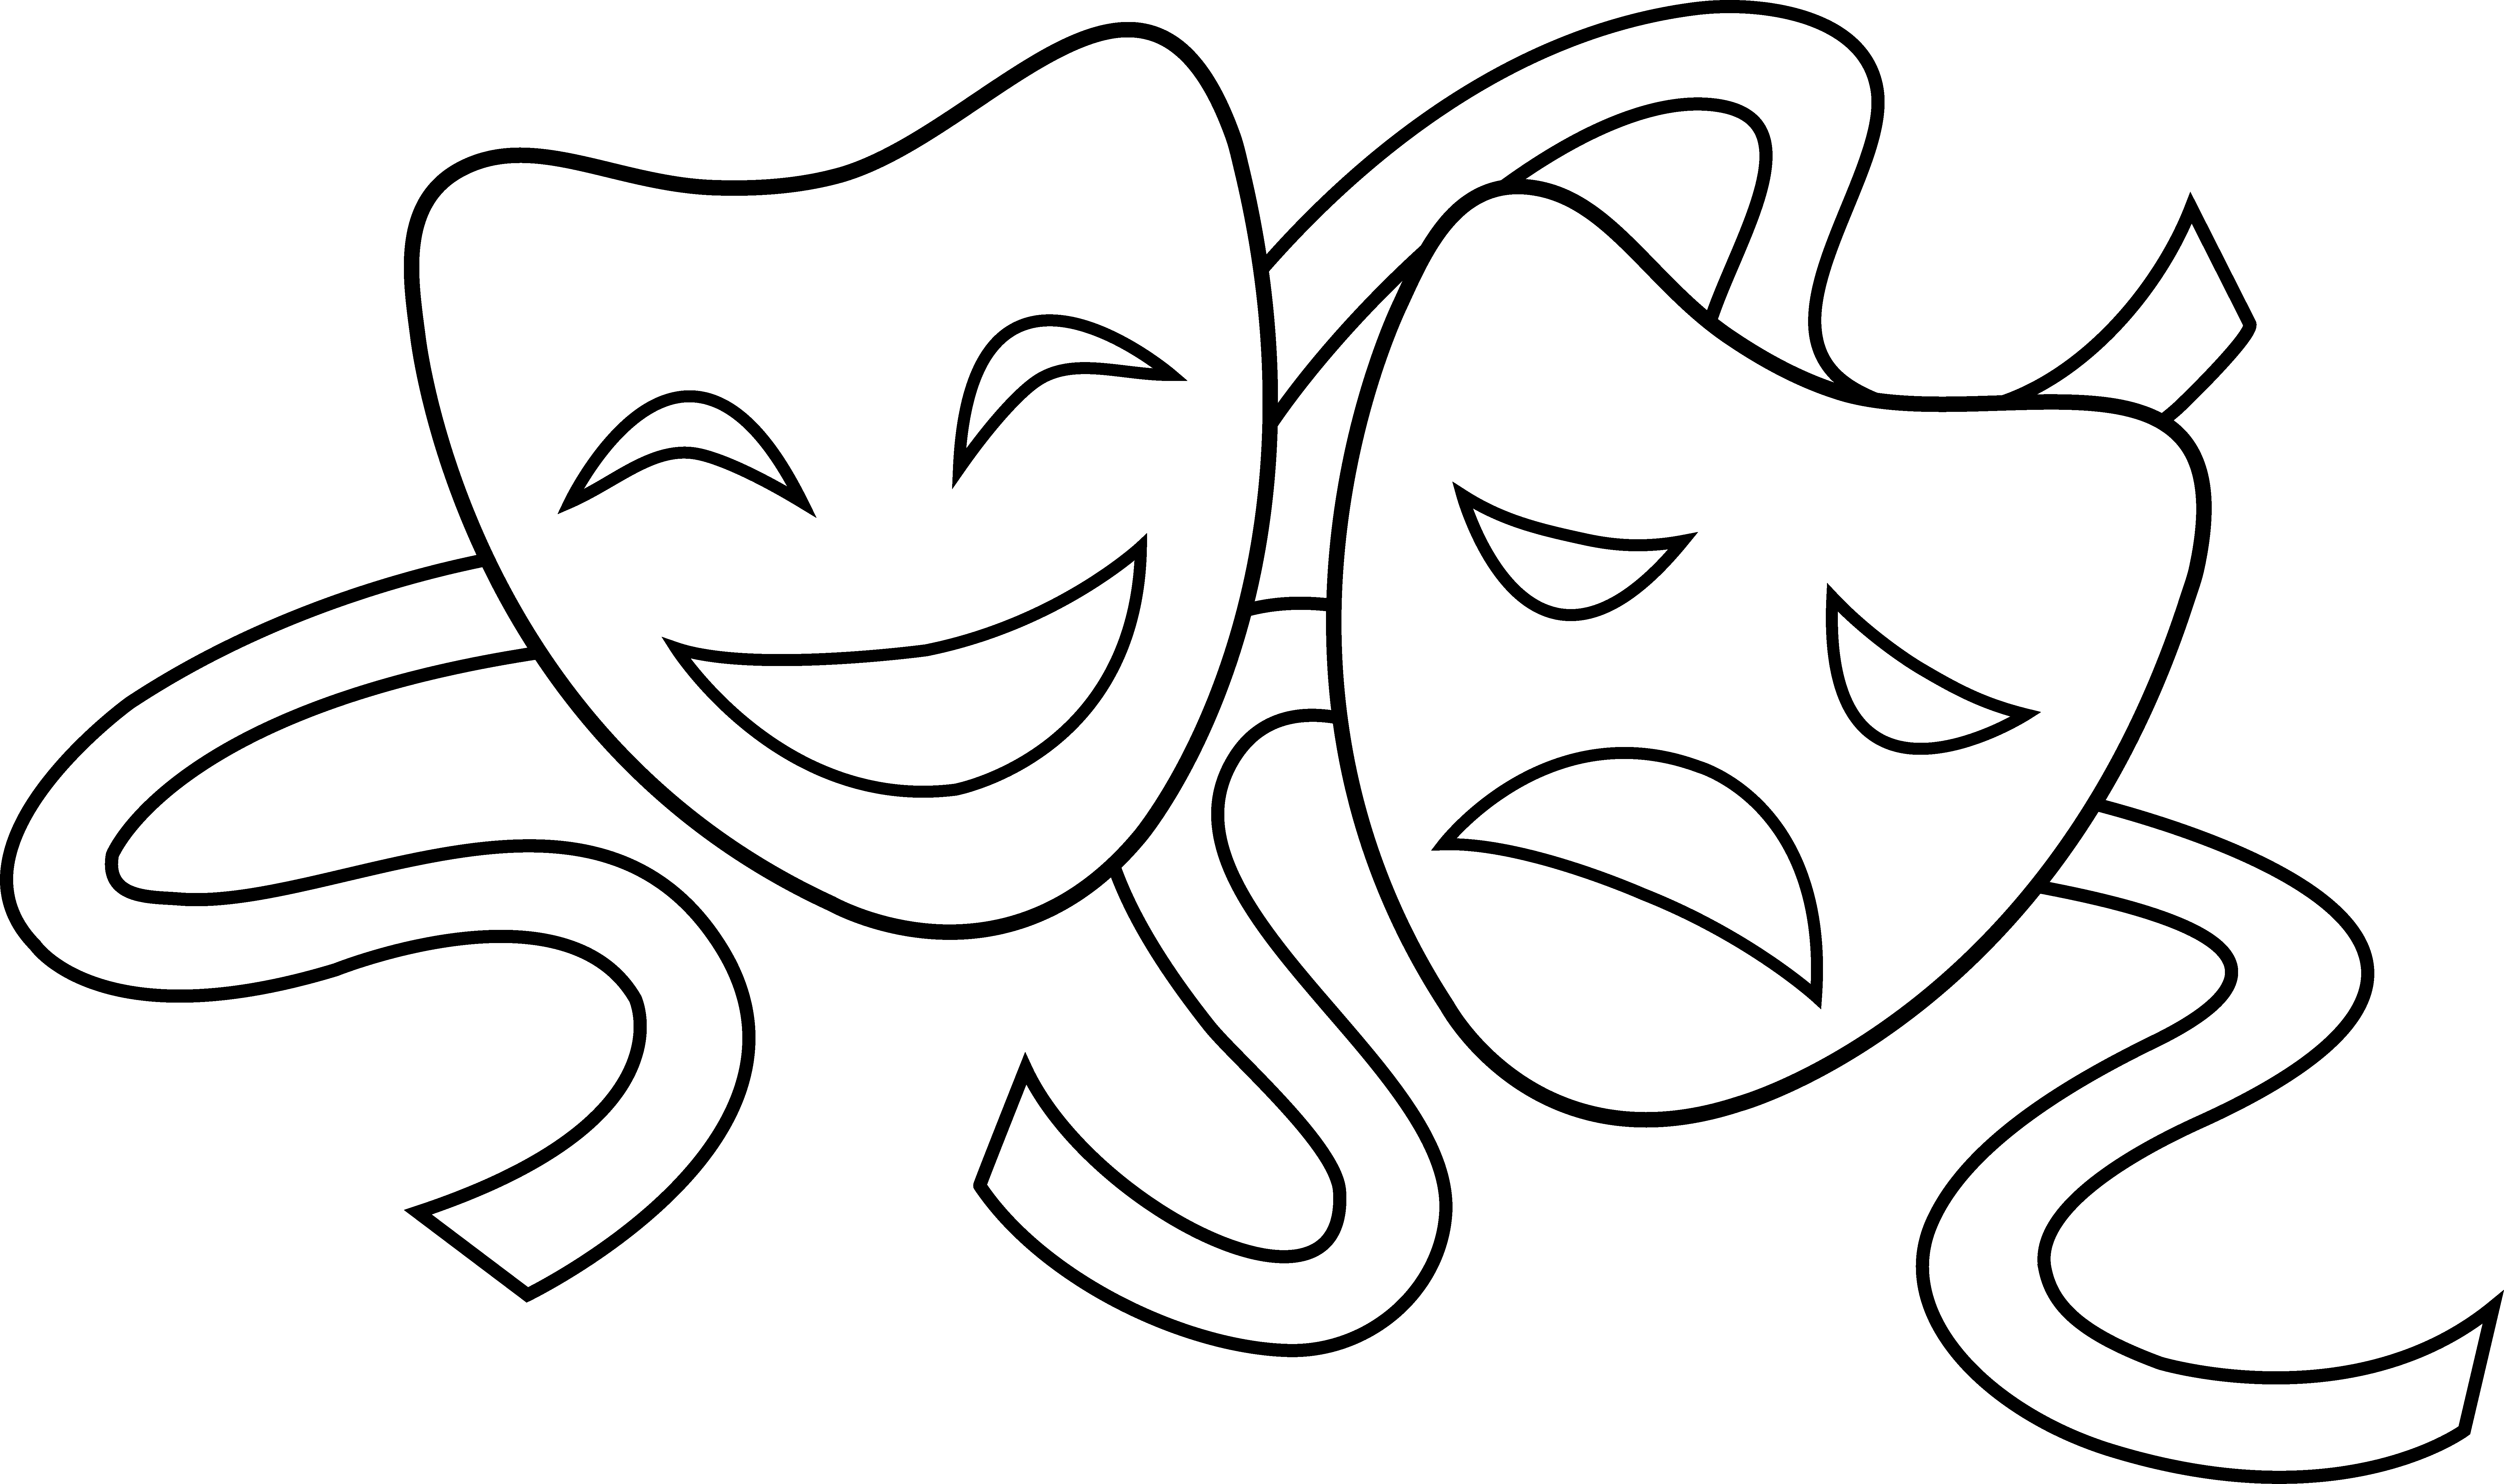 Acting drawing outline. Theater masks signs pinterest